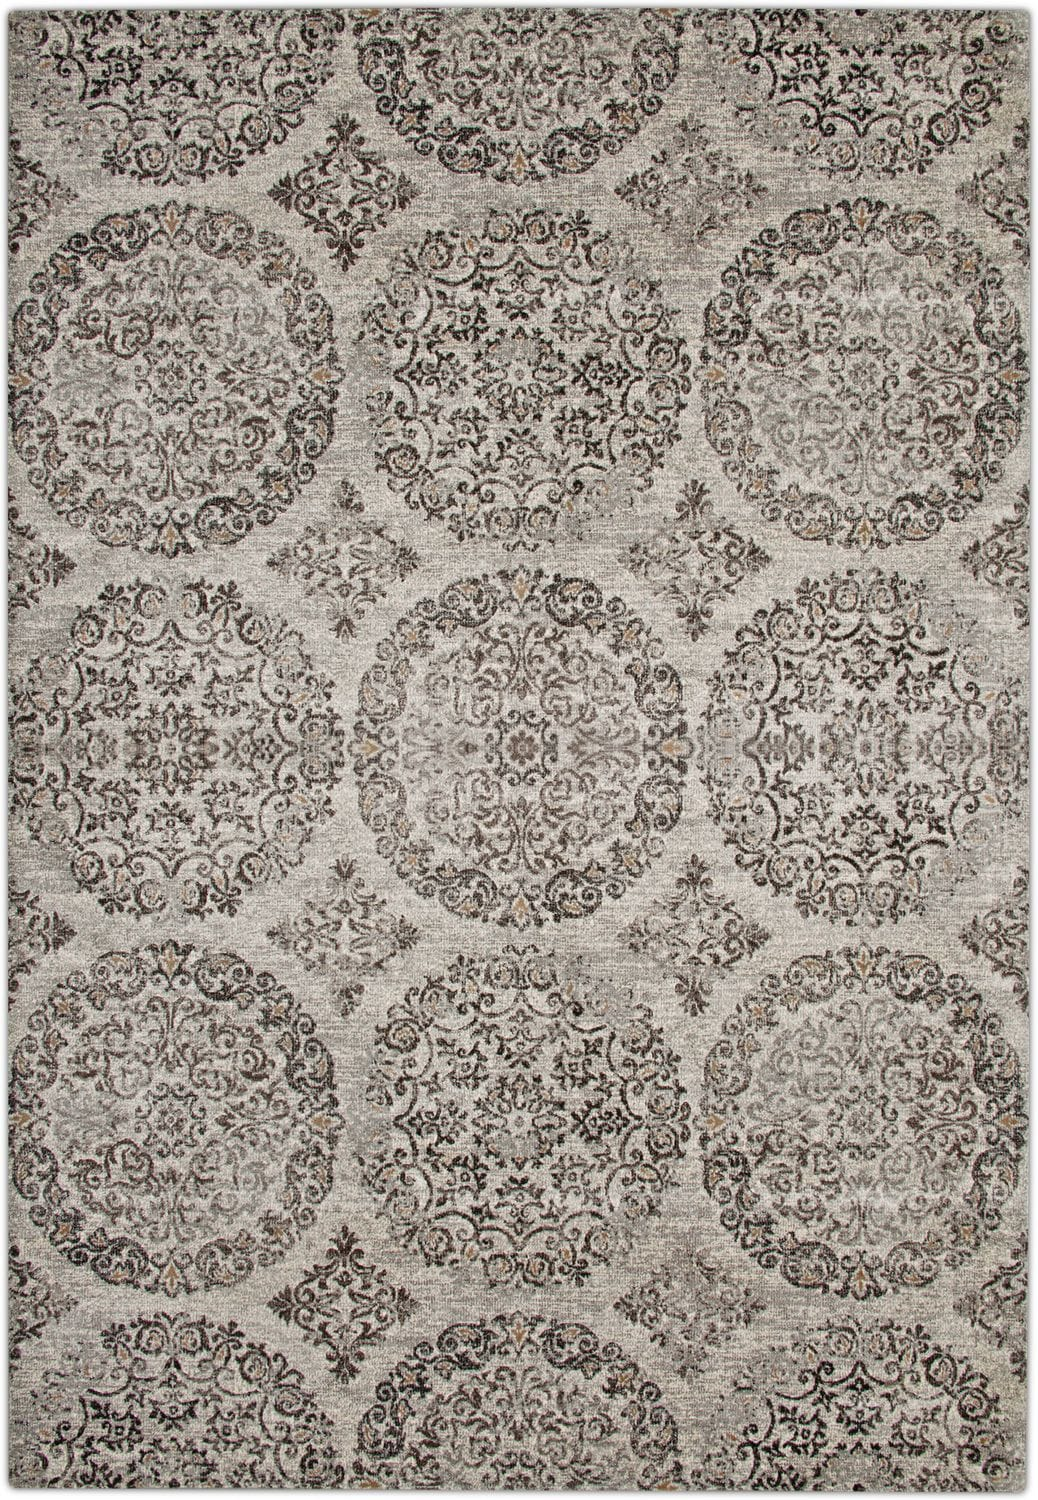 Rugs - Sonoma Area Rug - Beige and Brown